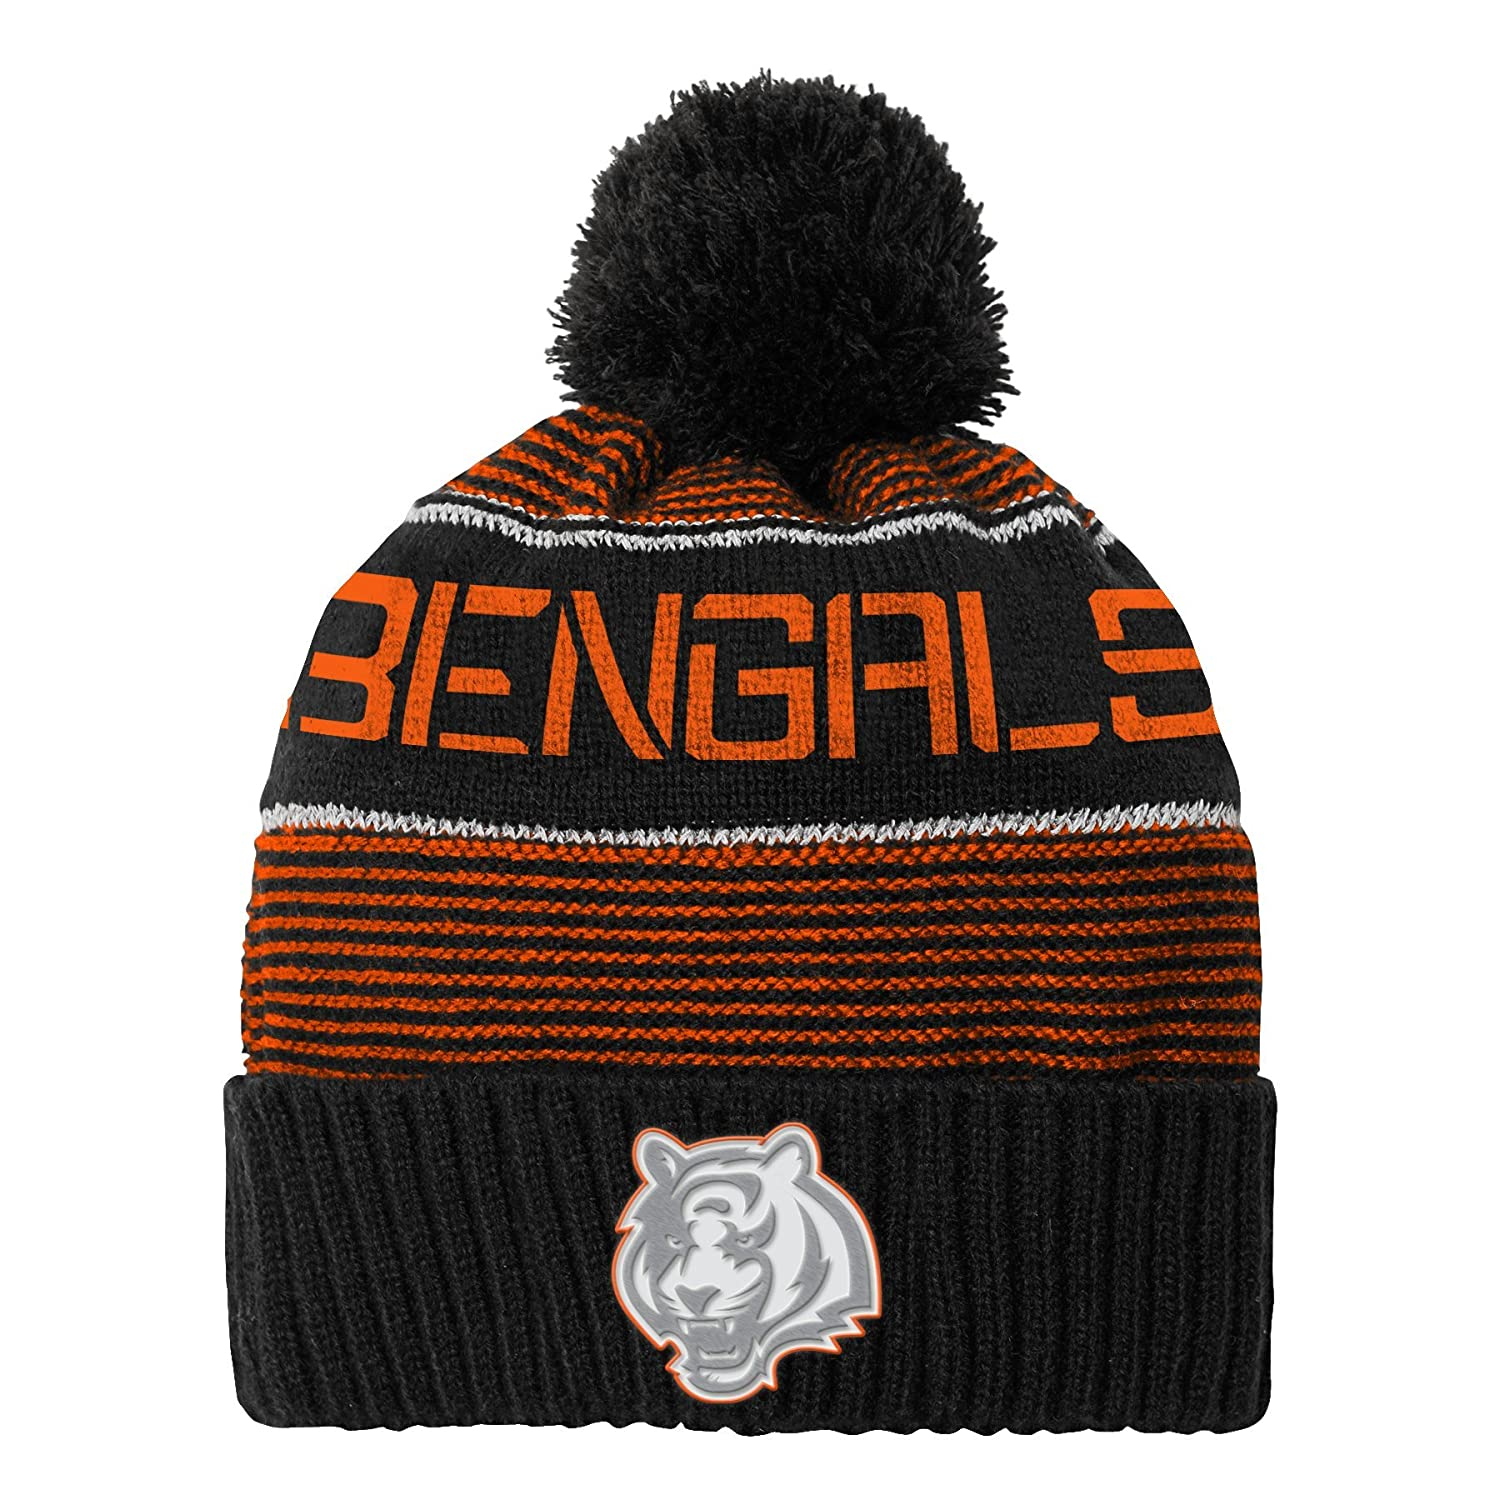 Outerstuff NFL Boys NFL Youth Boys Magna Reflective Cuffed Knit Hat with Pom